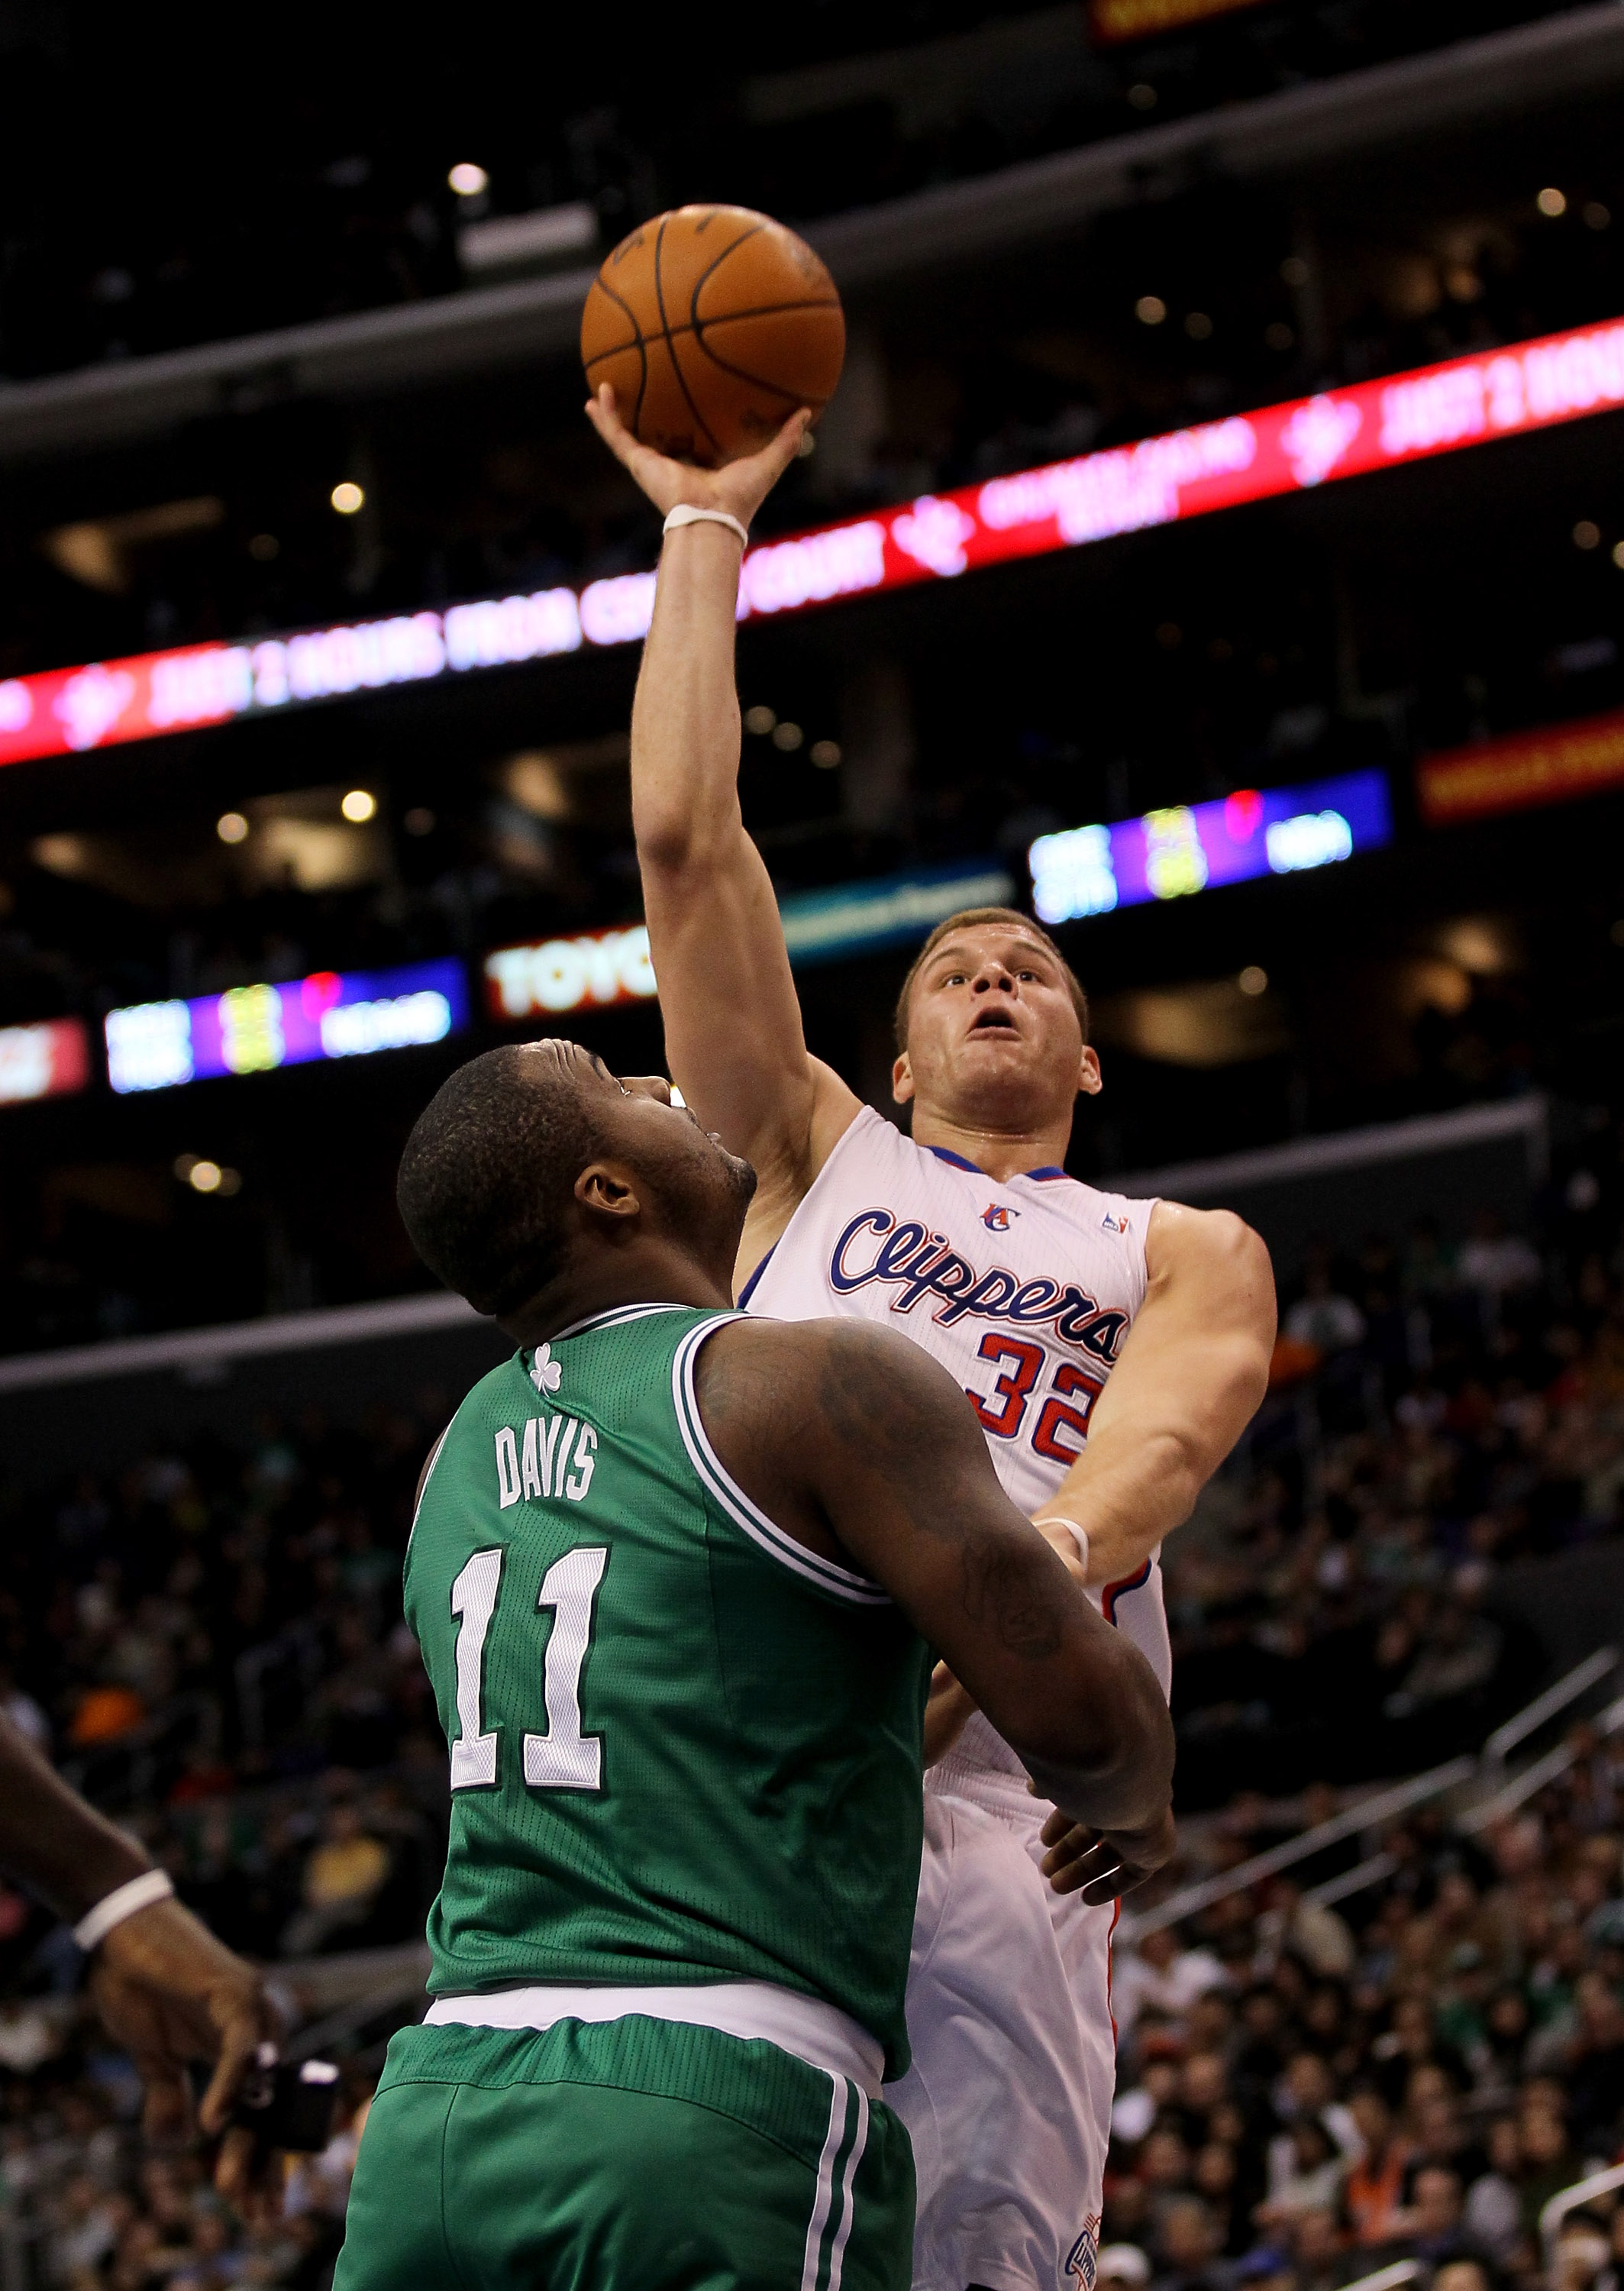 LOS ANGELES, CA - FEBRUARY 26:  Blake Griffin #32 of the Los Angeles Clippers shoots over Glen Davis #11 of the Boston Celtics at Staples Center on February 26, 2011  in Los Angeles, California. The Celtics won 99-92.  NOTE TO USER: User expressly acknowl